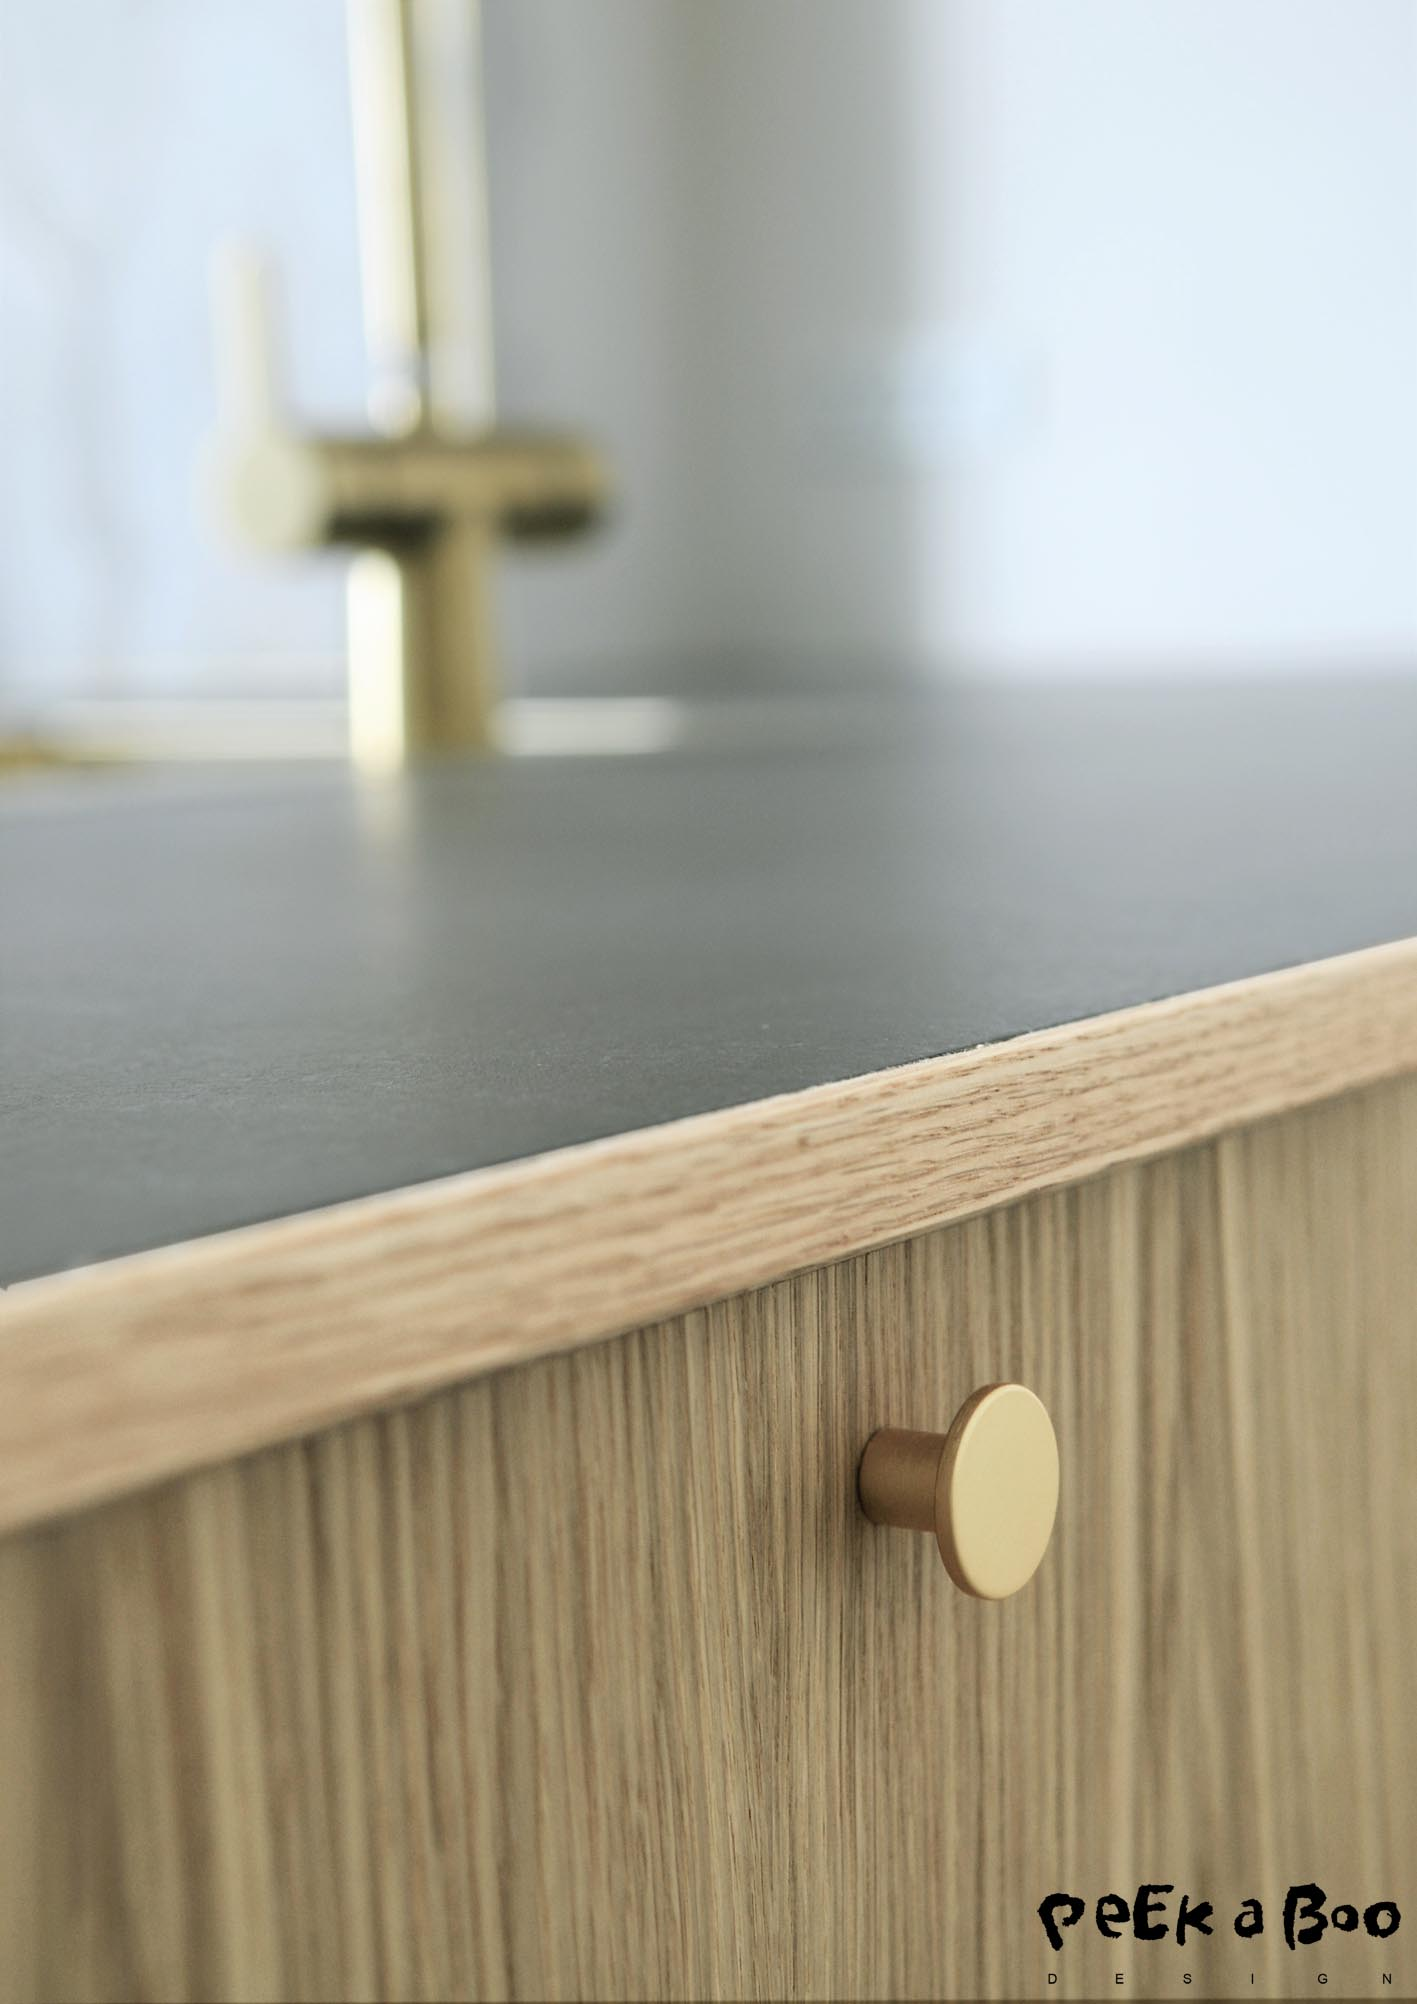 The como grib for our new kitchen cabinets. they are in brushed brass and from Beslag online.